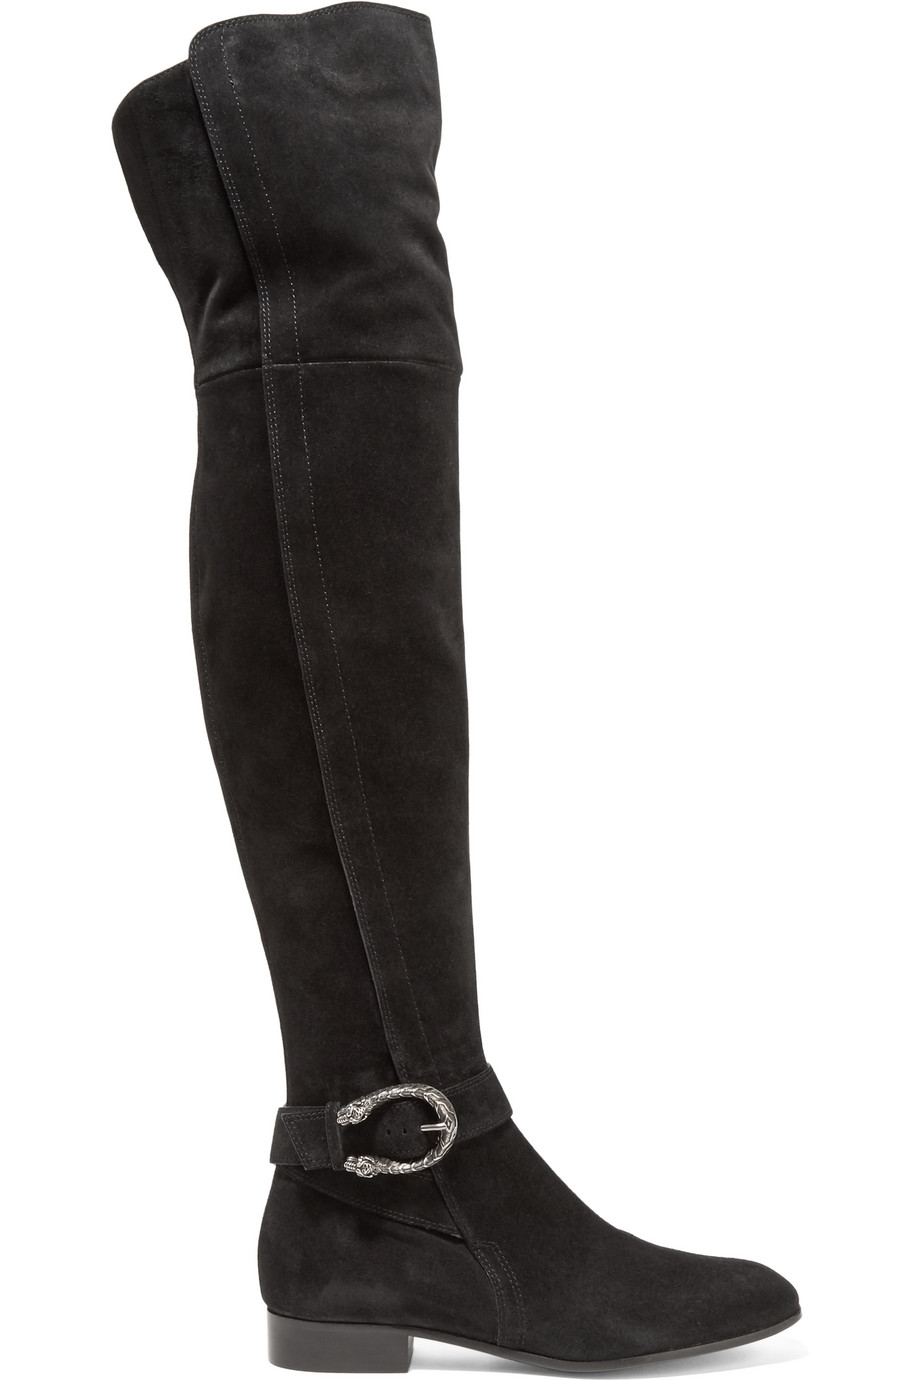 Gucci Dionysus Suede Over-the-Knee Boots, Black, Women's US Size: 9, Size: 39.5